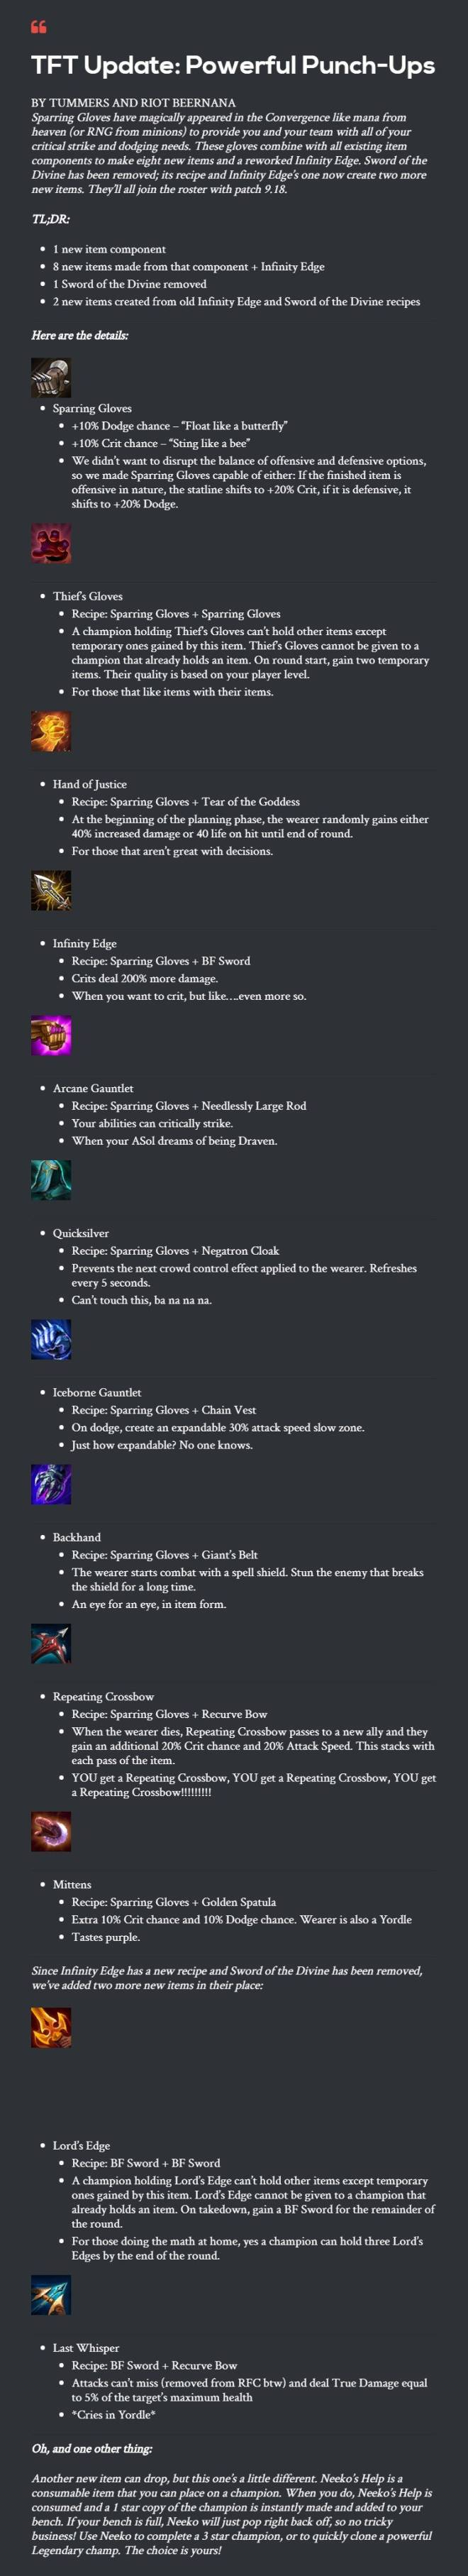 Teamfight Tactics: General - New Items coming to Patch 9.19 image 2